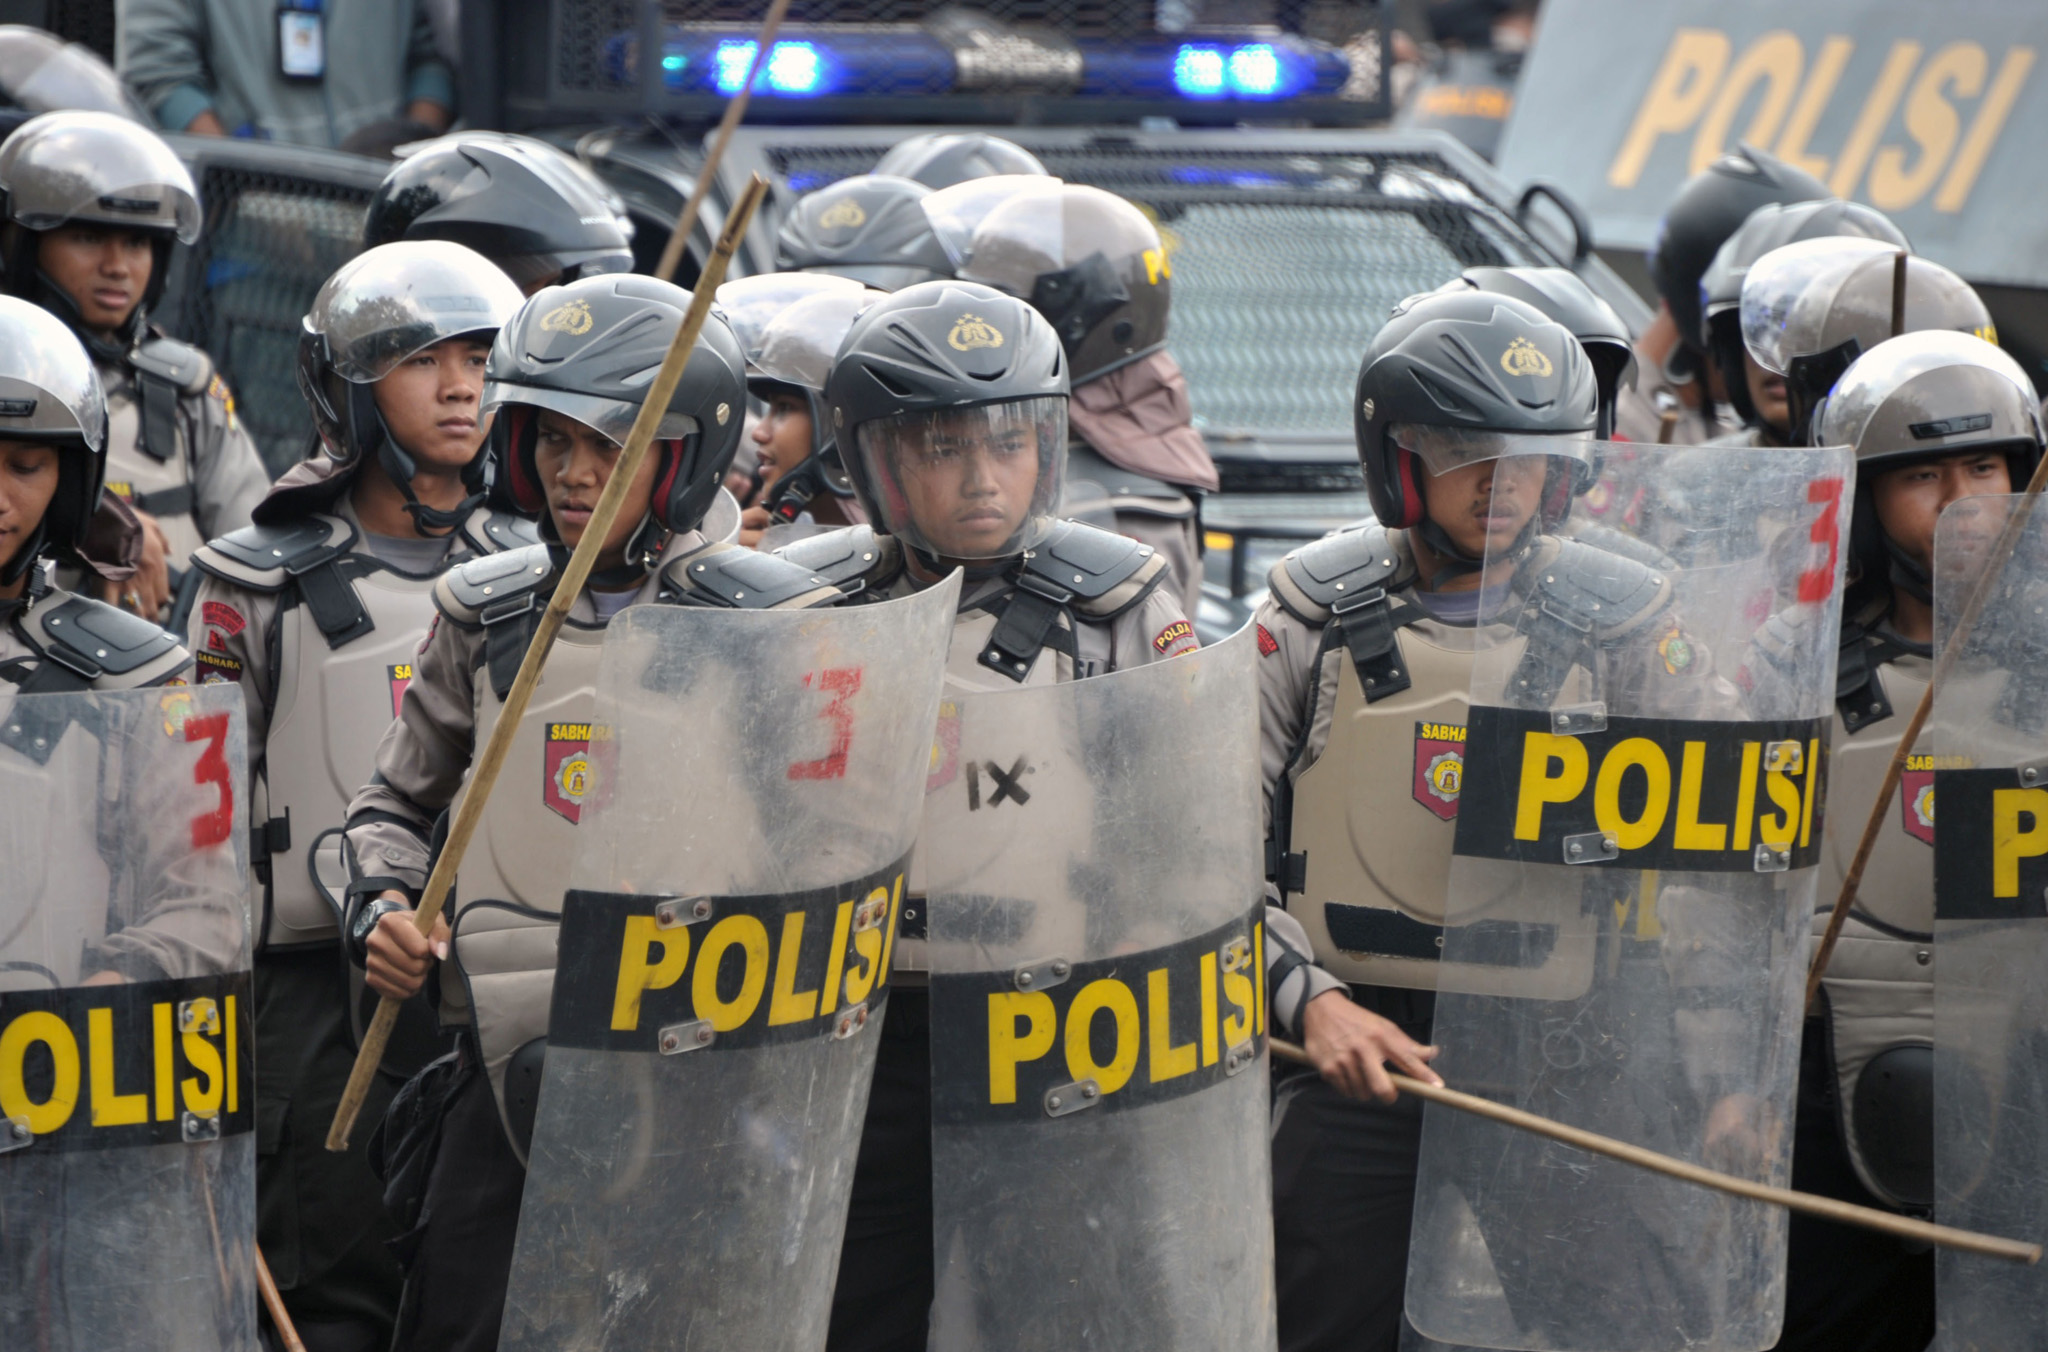 Indonesian anti-riot police stand guard as presidential candidate Prabowo's supporters try to pass a blockade near the constitutional court in Jakarta. Indonesian ex-general Prabowo Subianto angrily claimed widespread cheating cost him victory in the country's presidential election at the start of legal challenge to the results.